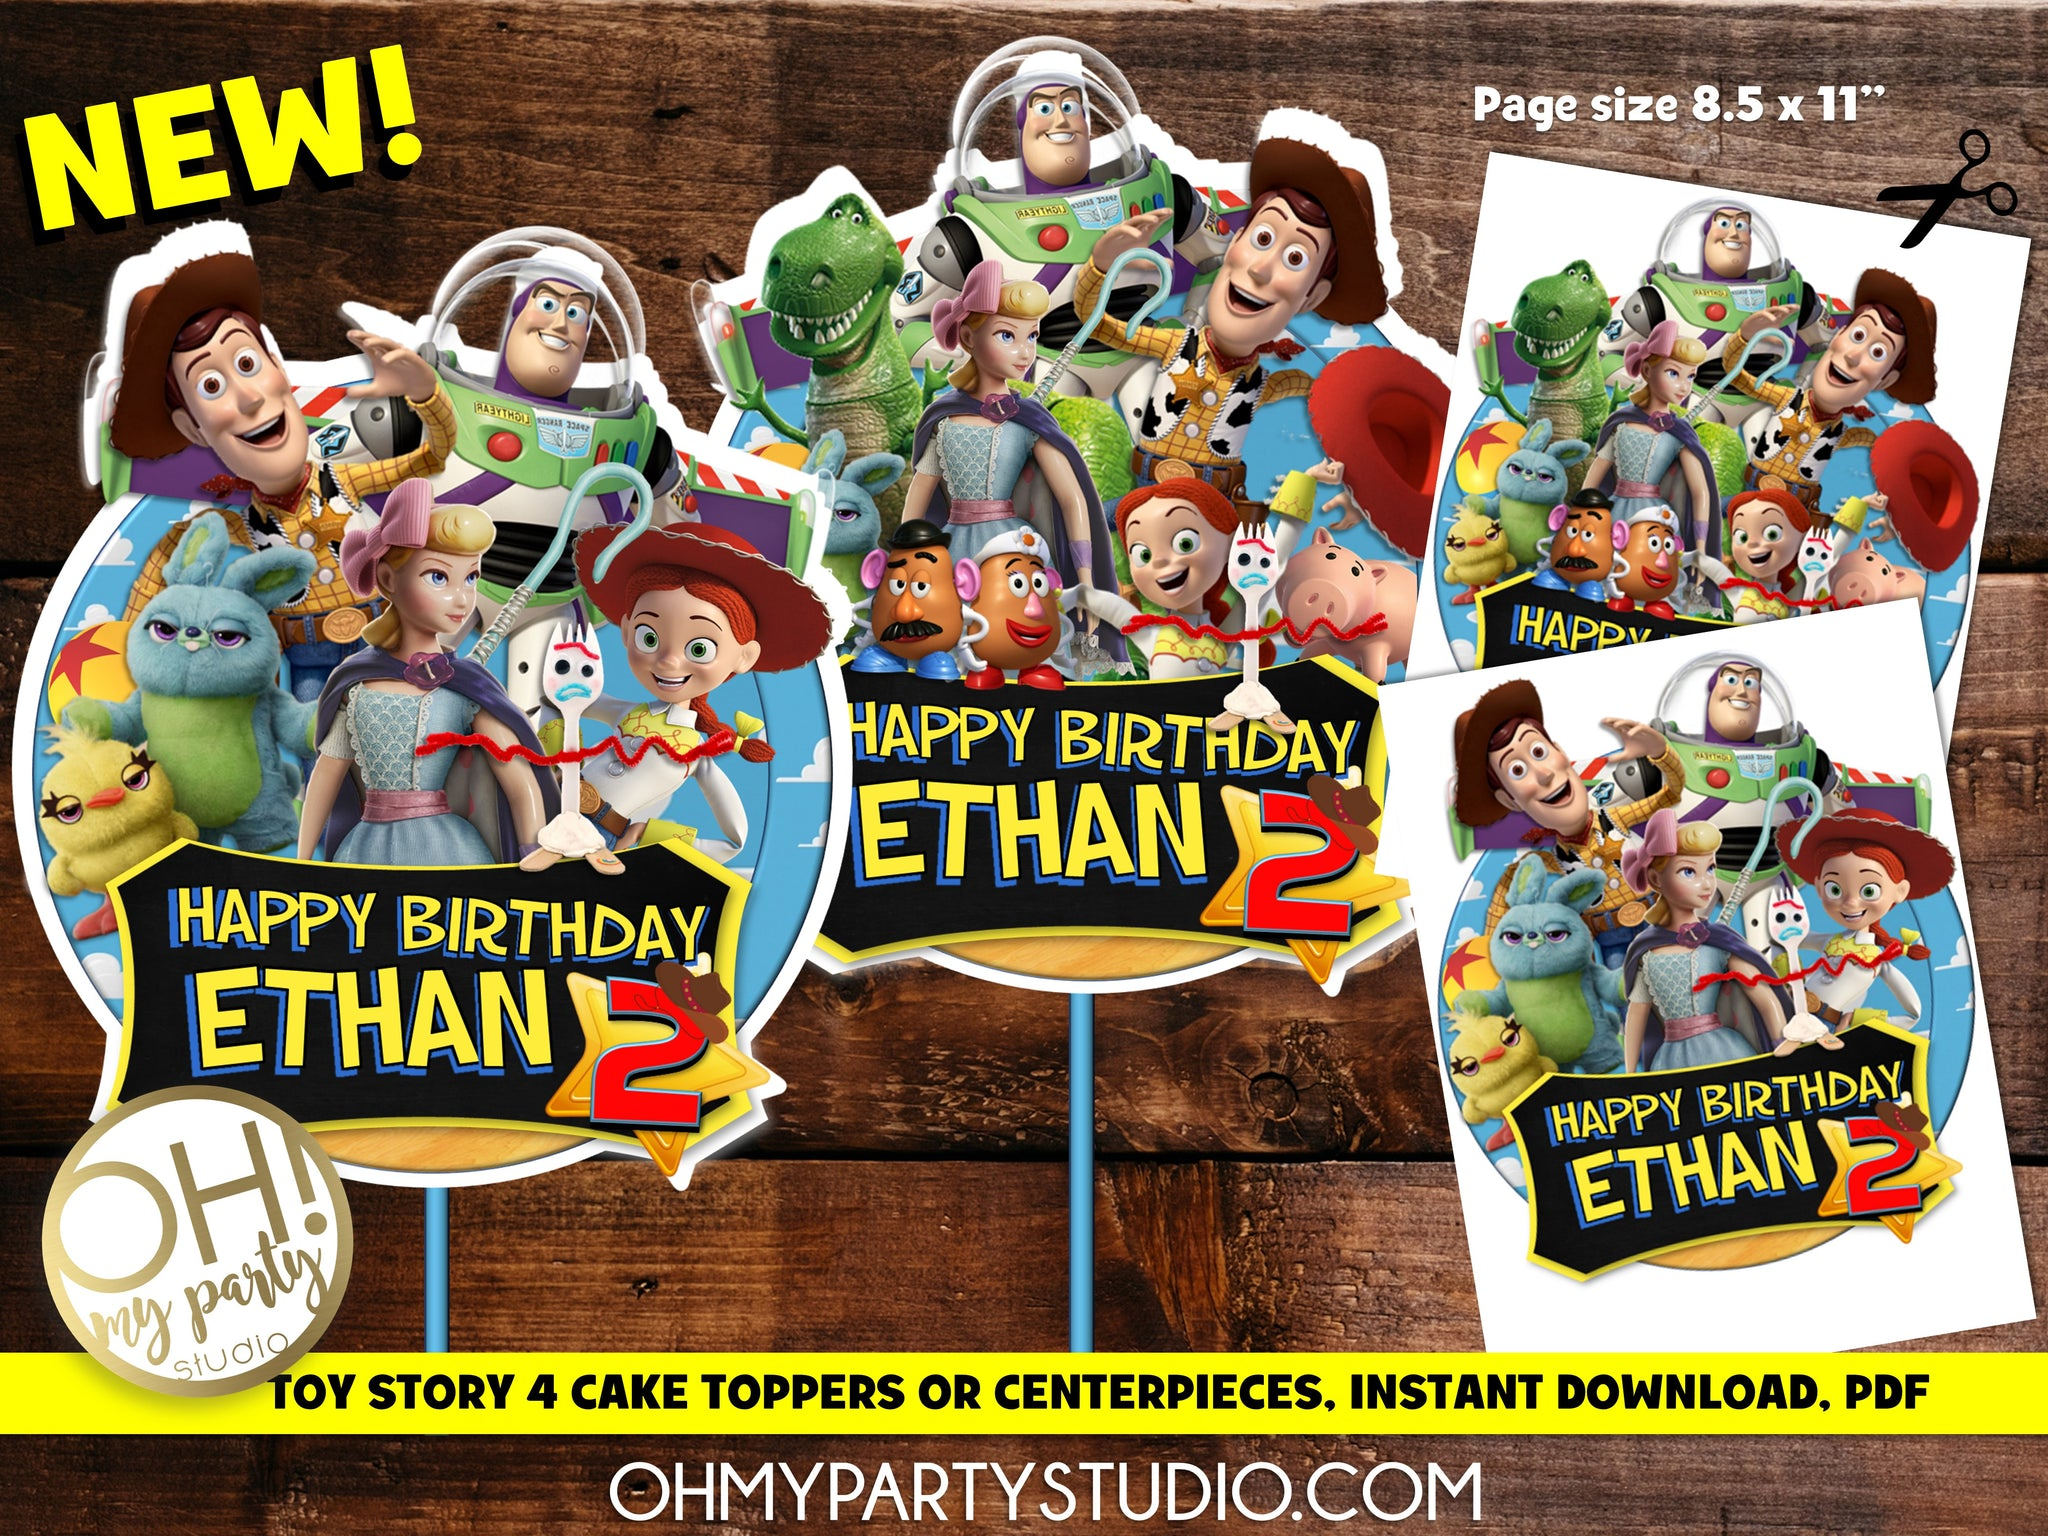 TOY STORY 4 CAKE TOPPER, TOY STORY 4 PARTY IDEAS, TOY STORY 4 CENTERPIECES, TOY STORY 4 BIRTHDAY, TOY STORY 4 BIRTHDAY PARTY, TOY STORY 4 INVITATION, TOY STORY 4 INVITATIONS, TOY STORY 4 PARTY